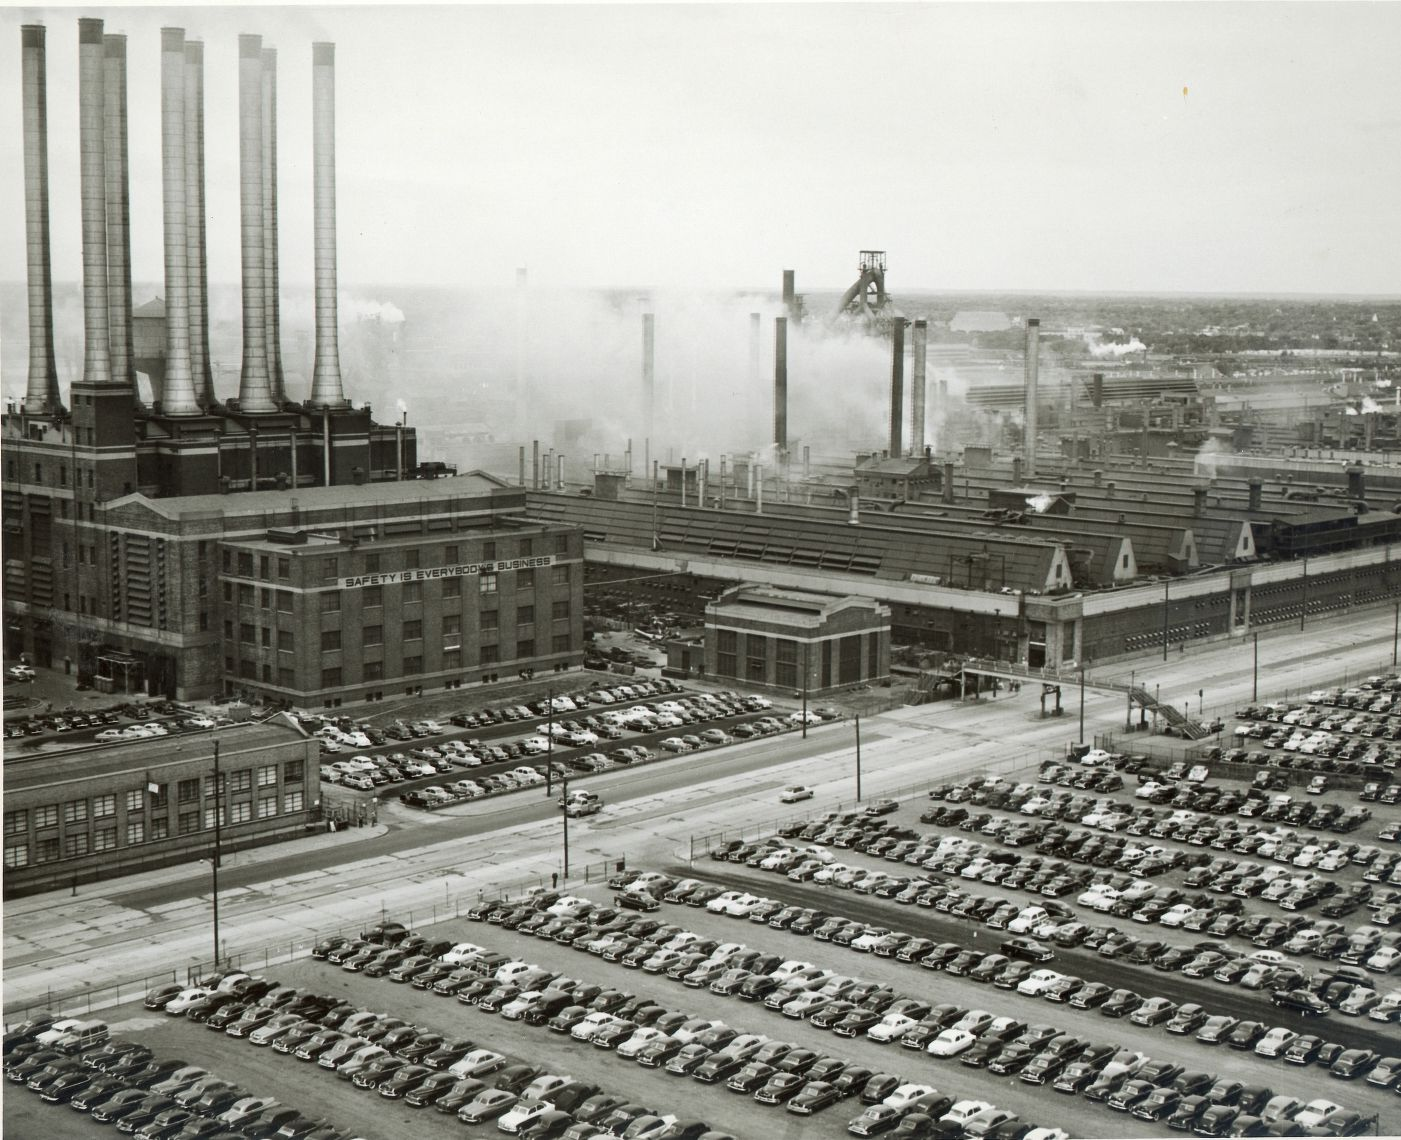 This Is An Image Of The First Ford Factory The Monsters Inc Facility Is Structured Similarly To This Factory Comp Motor City Vintage Michigan Detroit History